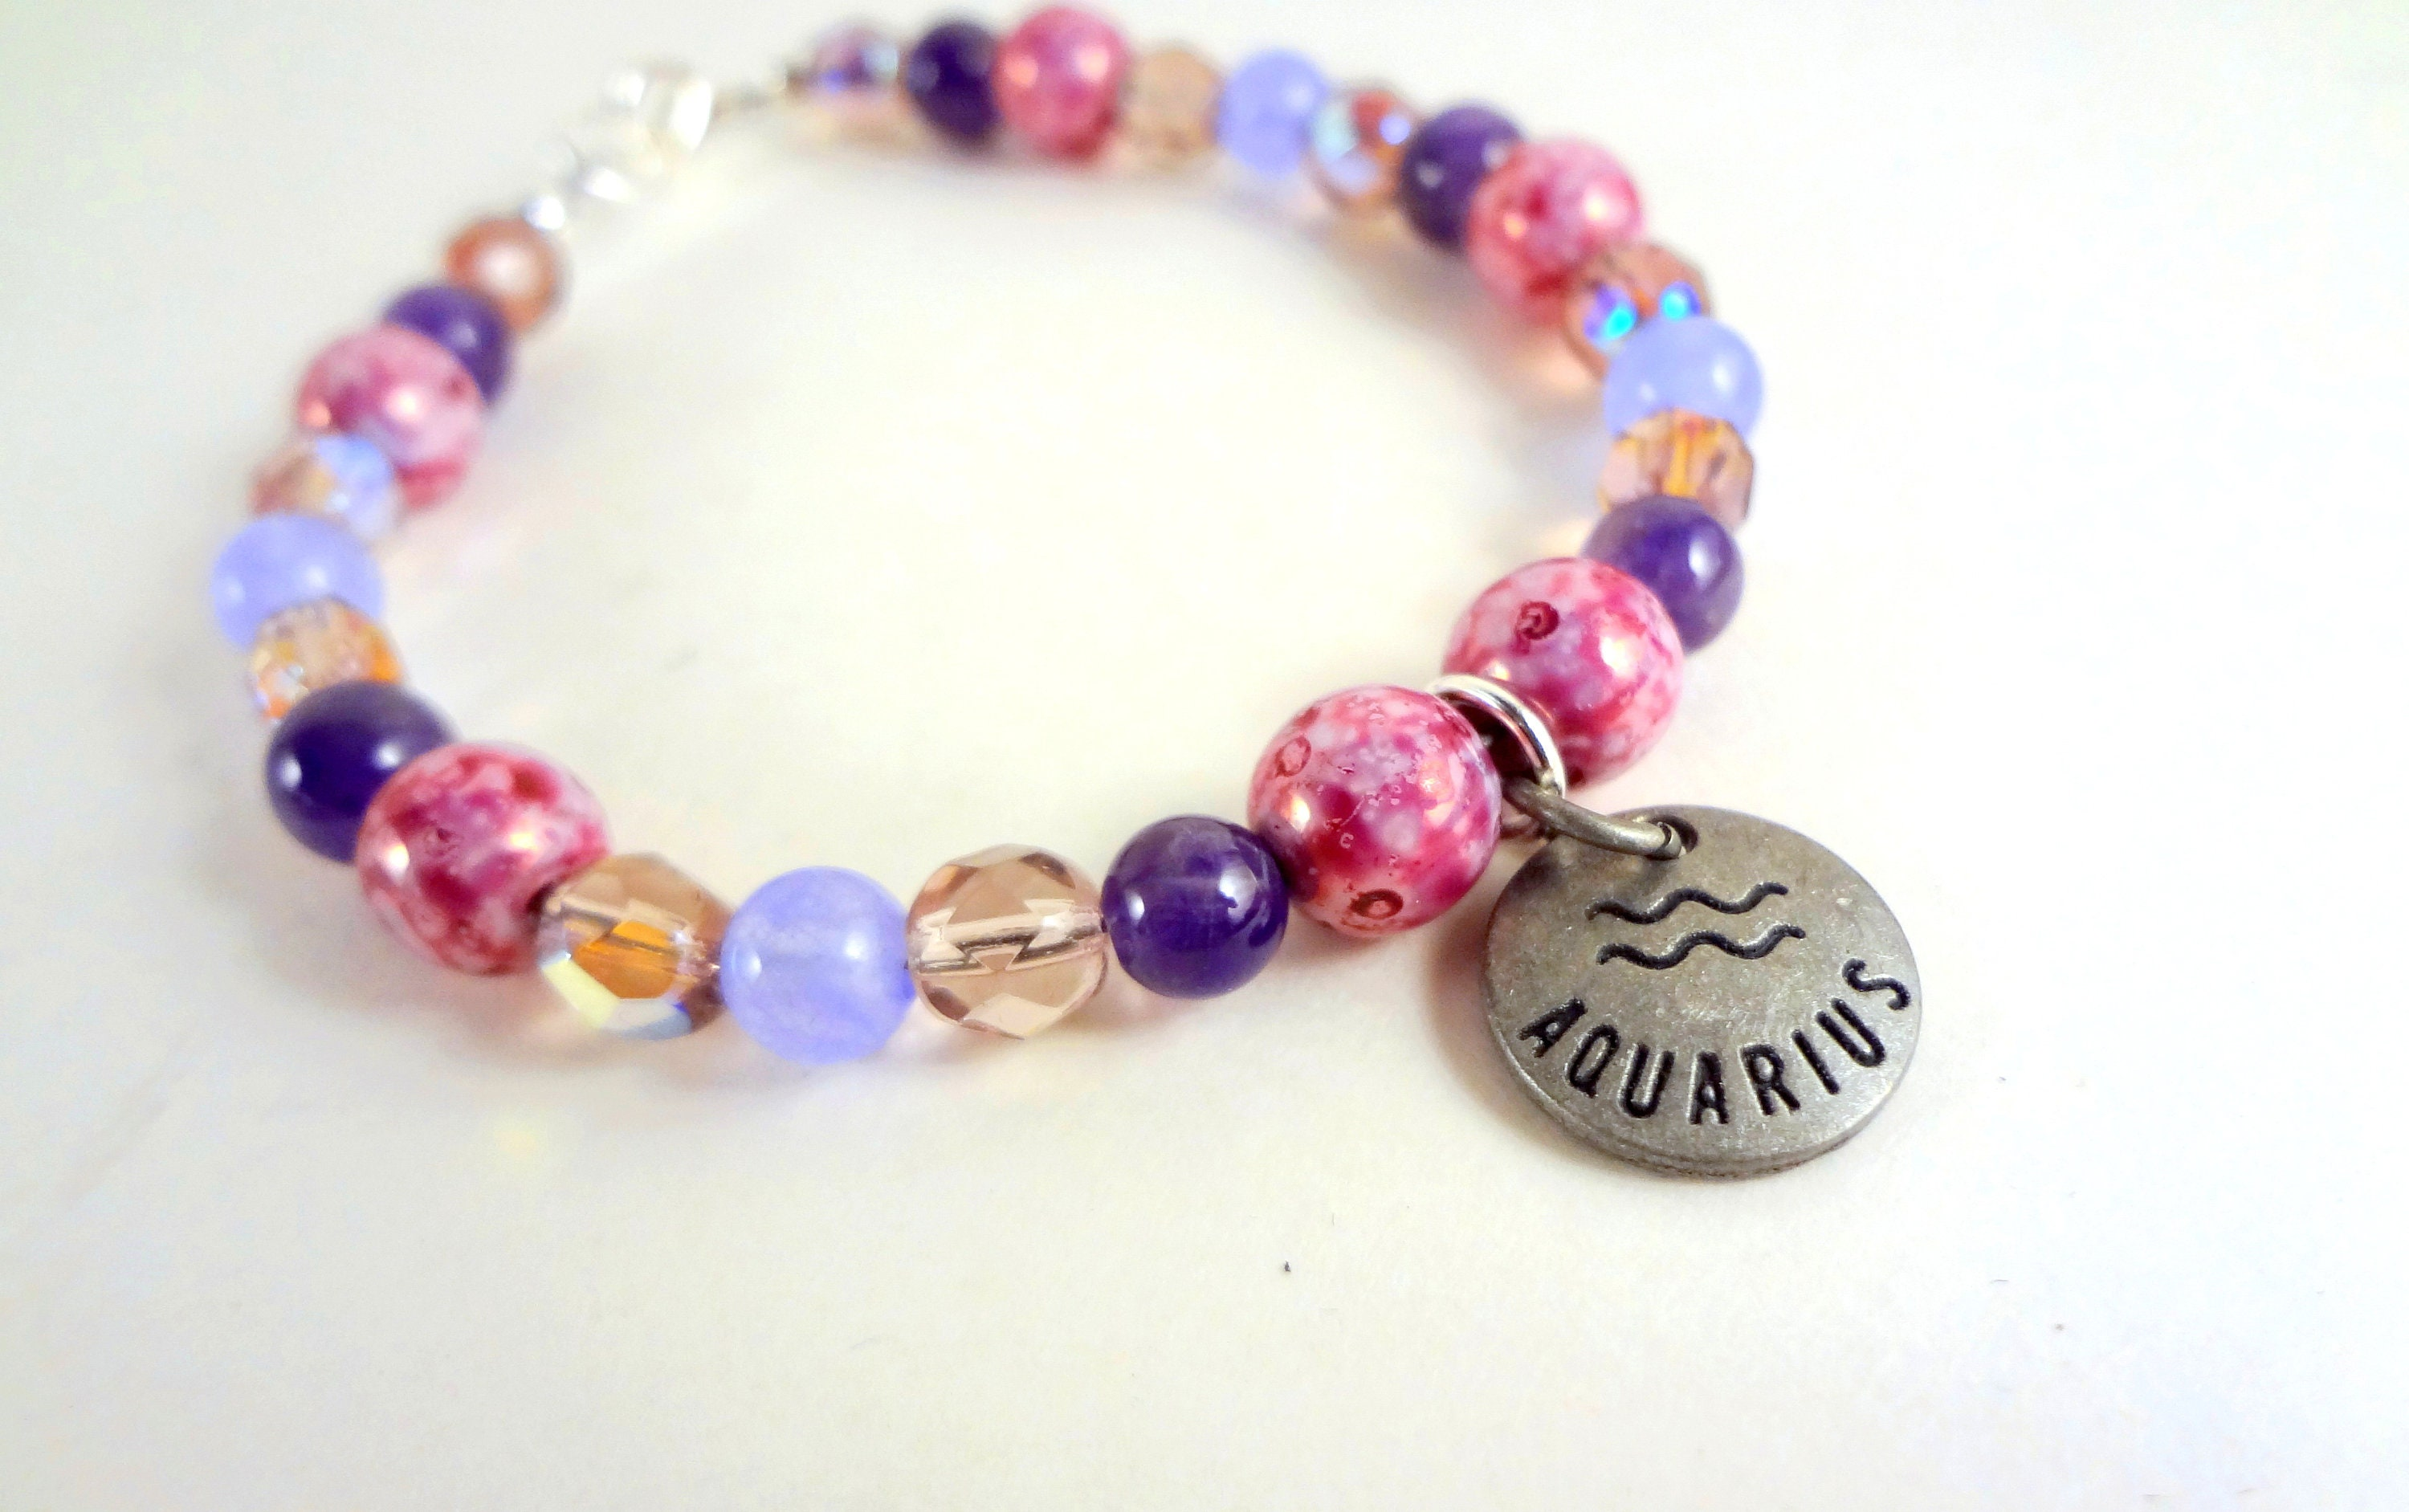 Aquarius Zodiac Charms Bracelet, February Amethyst Aquarius Jewelry, Aquarius Gift Zodiac Bracelets, Star Constellations Astrology Gifts